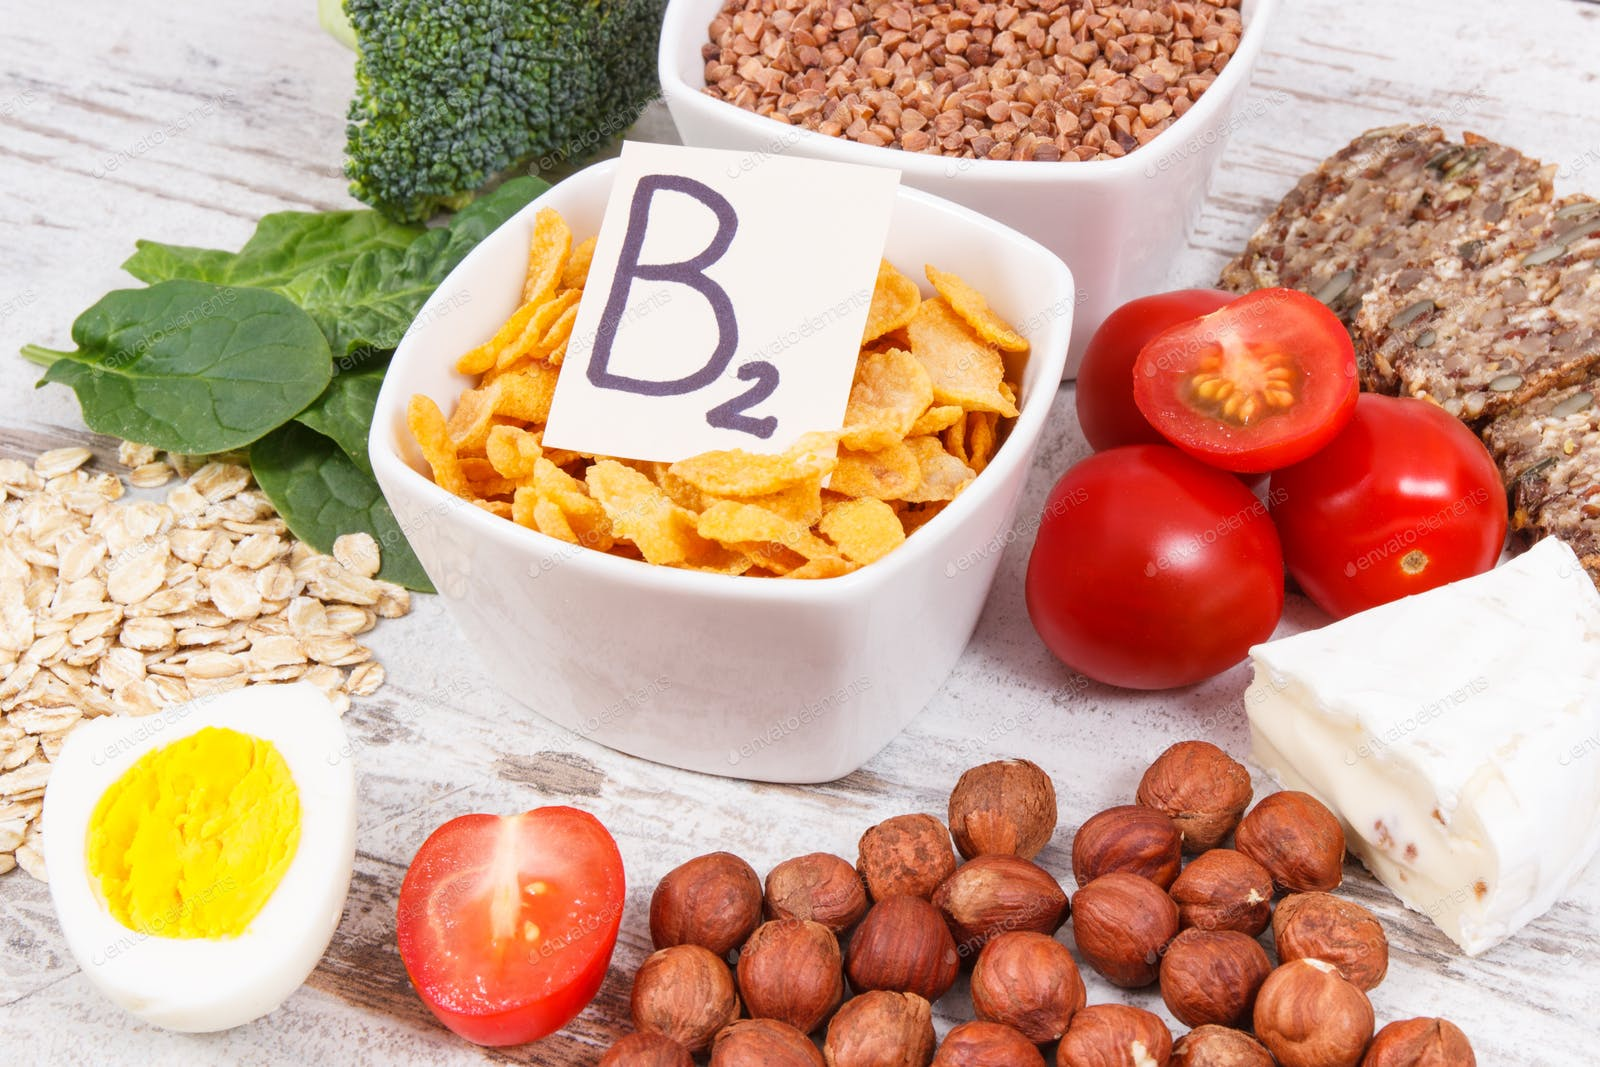 vitamin b2 health benefits